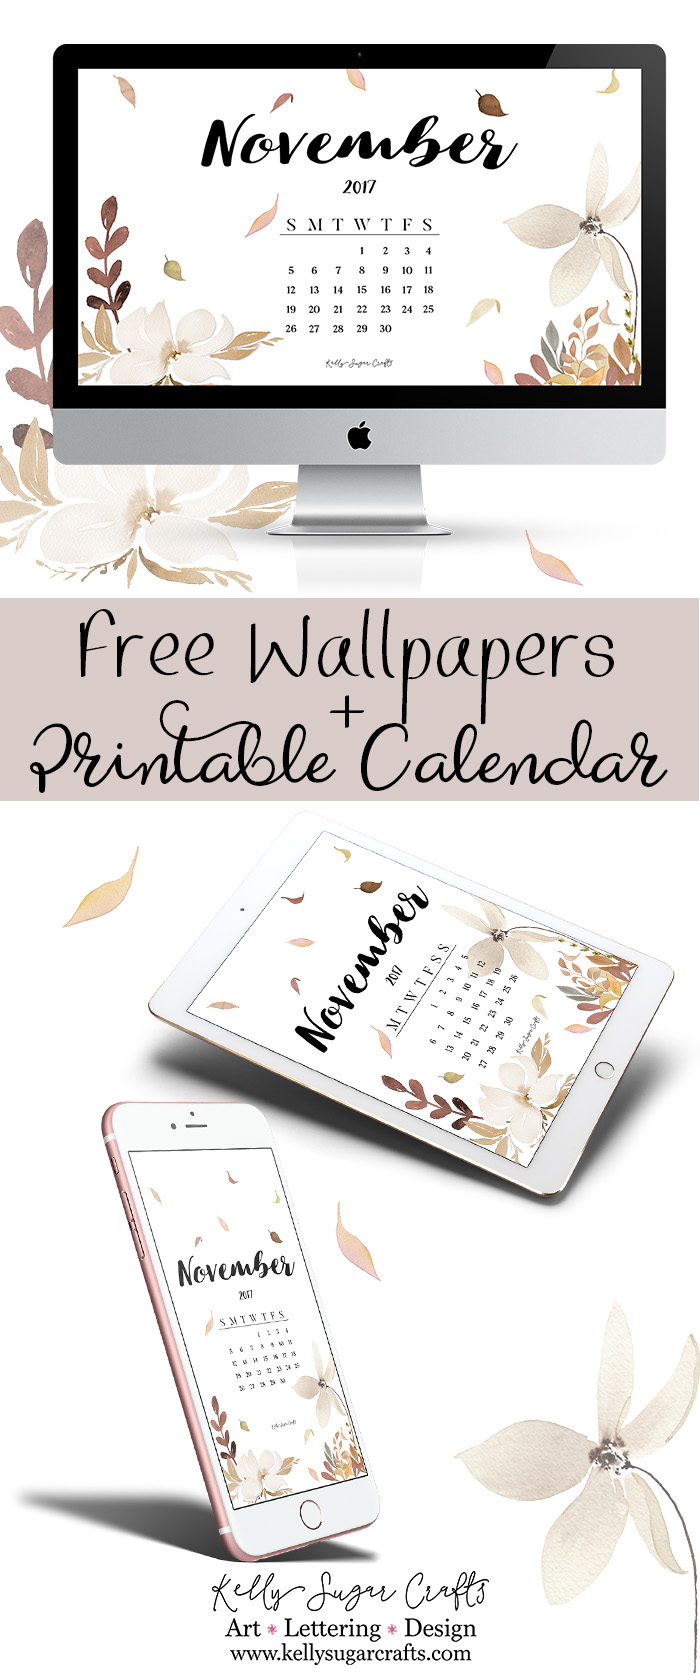 November 2017 Calendar Wallpapers and Free Printable by Kelly Sugar Crafts